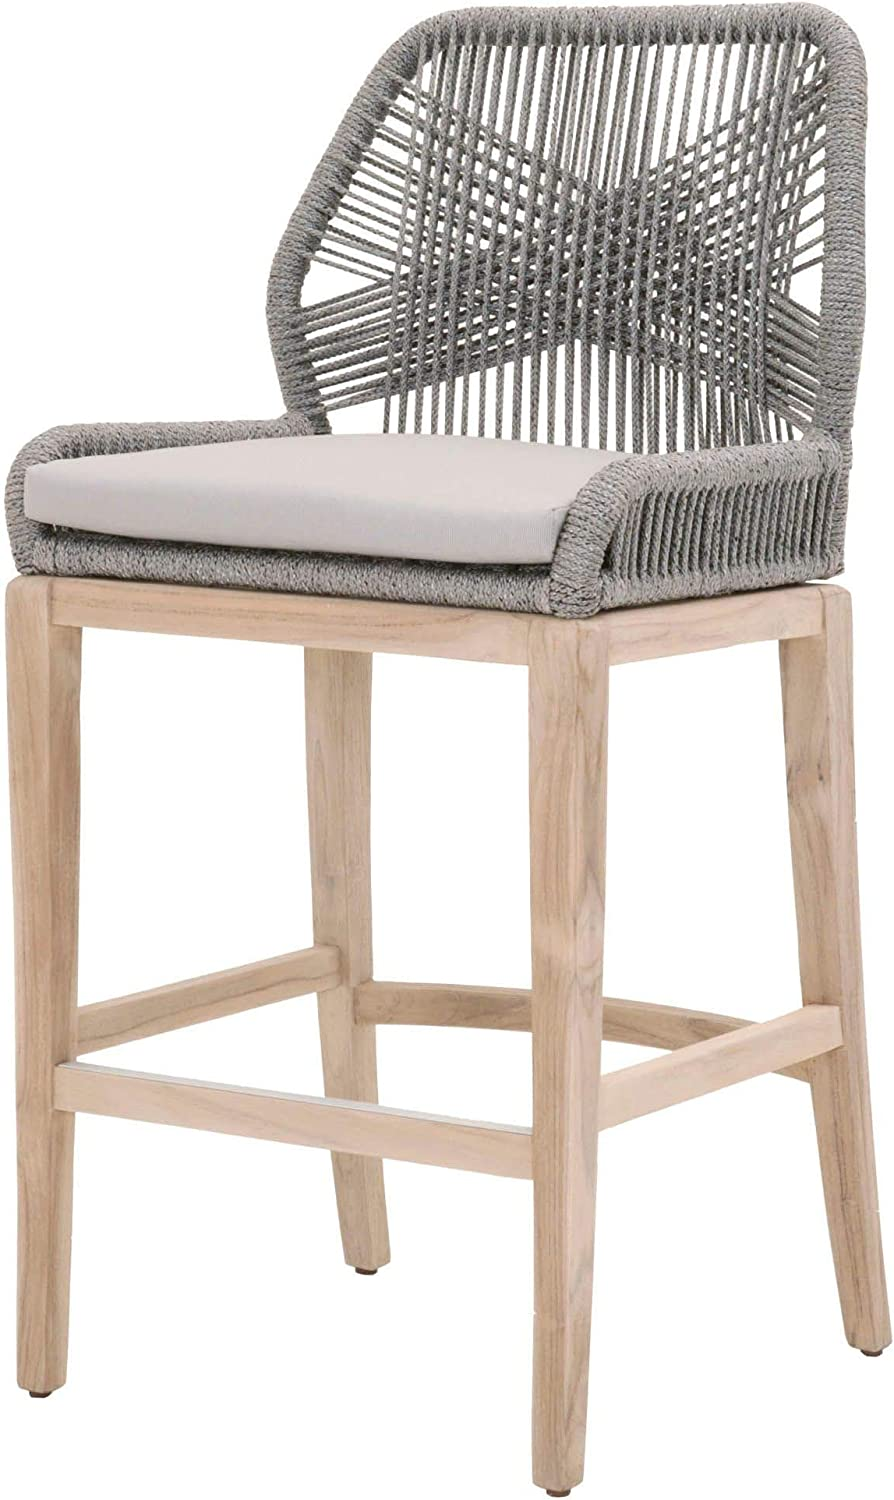 Benjara Wooden Superlatite Barstool with Intricate It is very popular Gray Weave Design Rope a